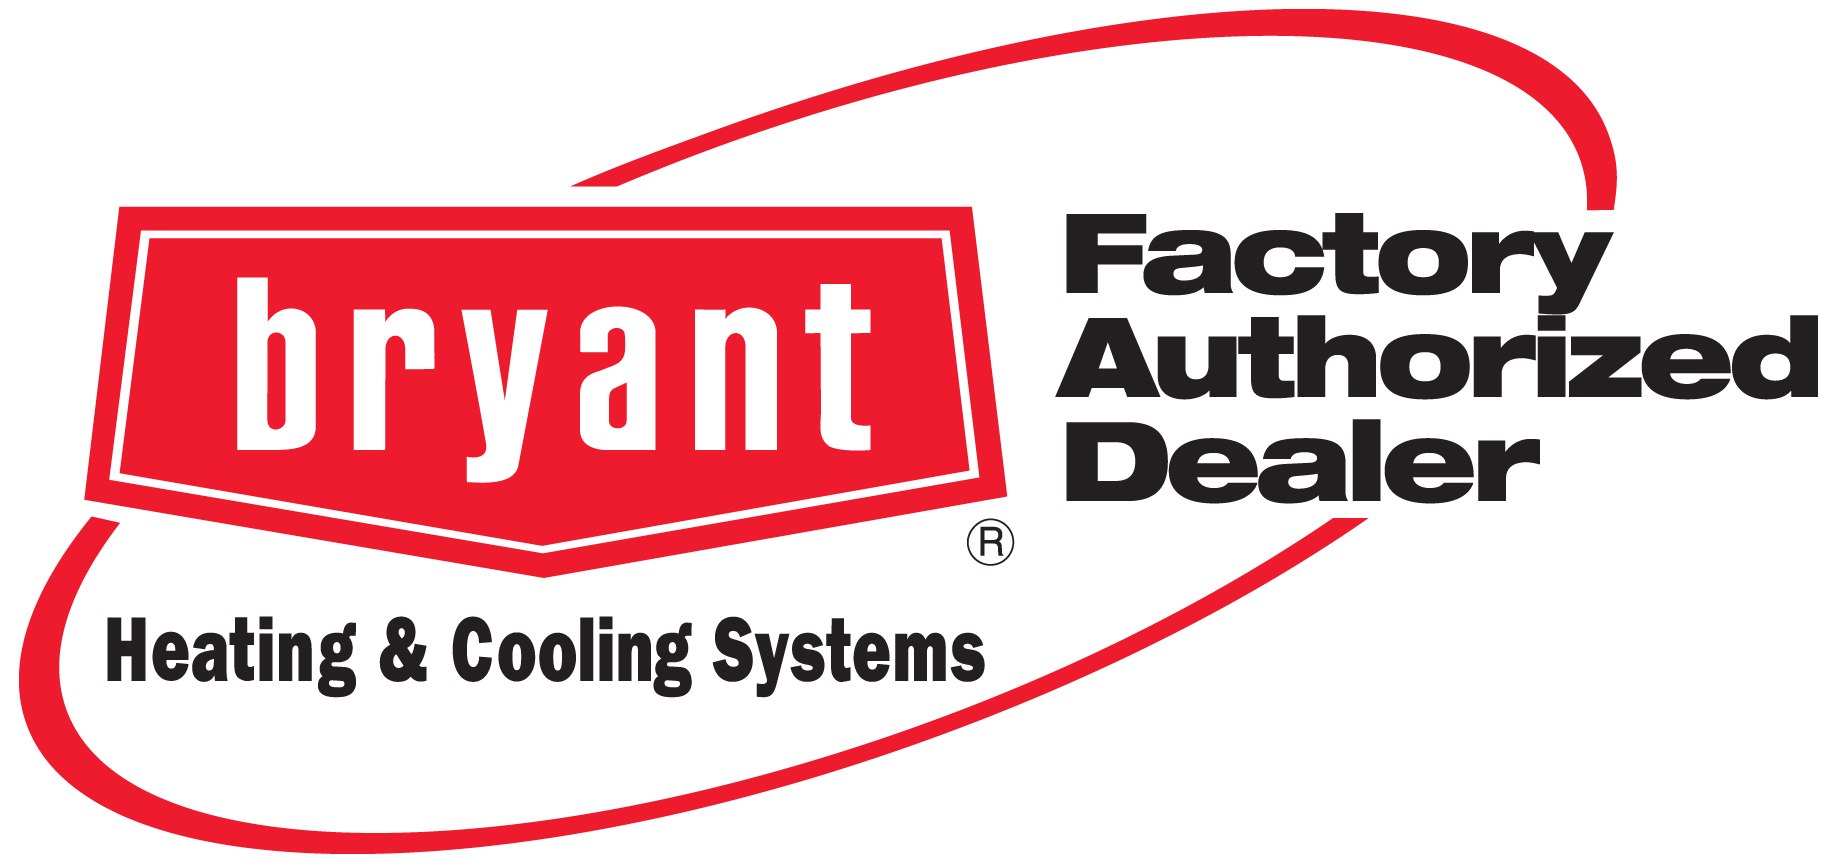 angell aire | heating & air conditioning services minneapolis st. paul